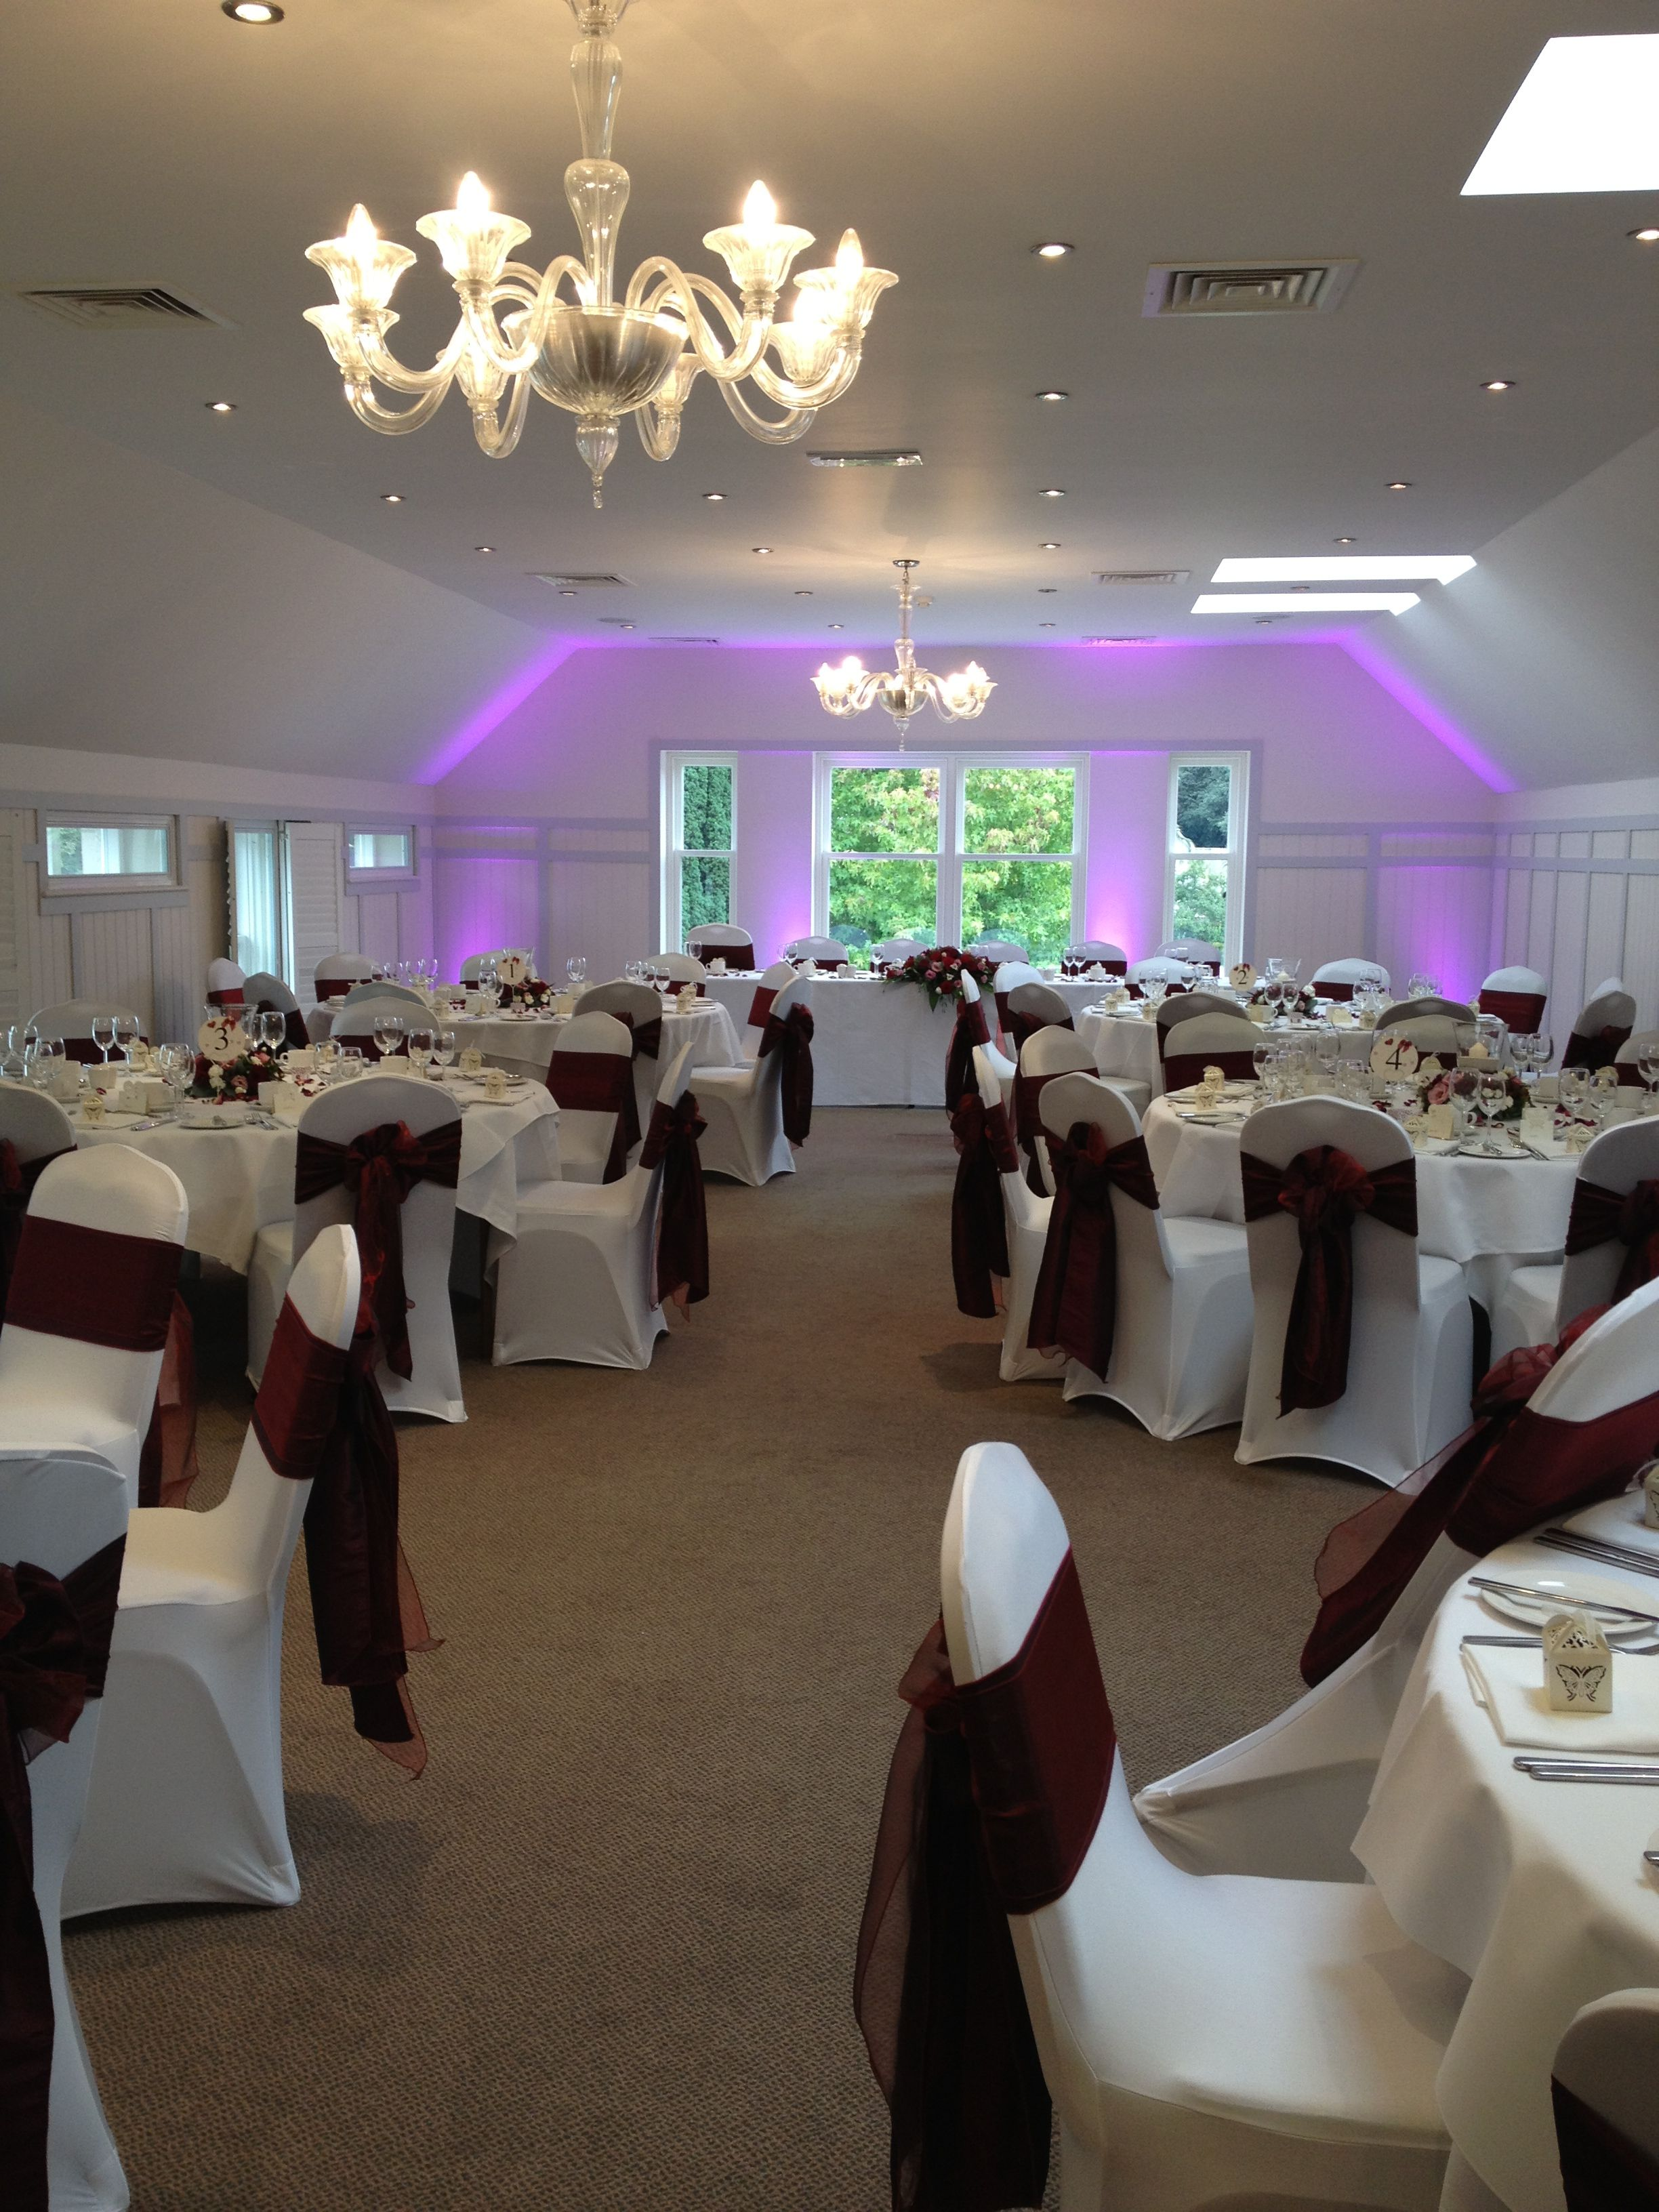 burgundy chair covers wedding tall dining room a traditional british breakfast set up with deep red wine and white sashes funky lilac uplighters